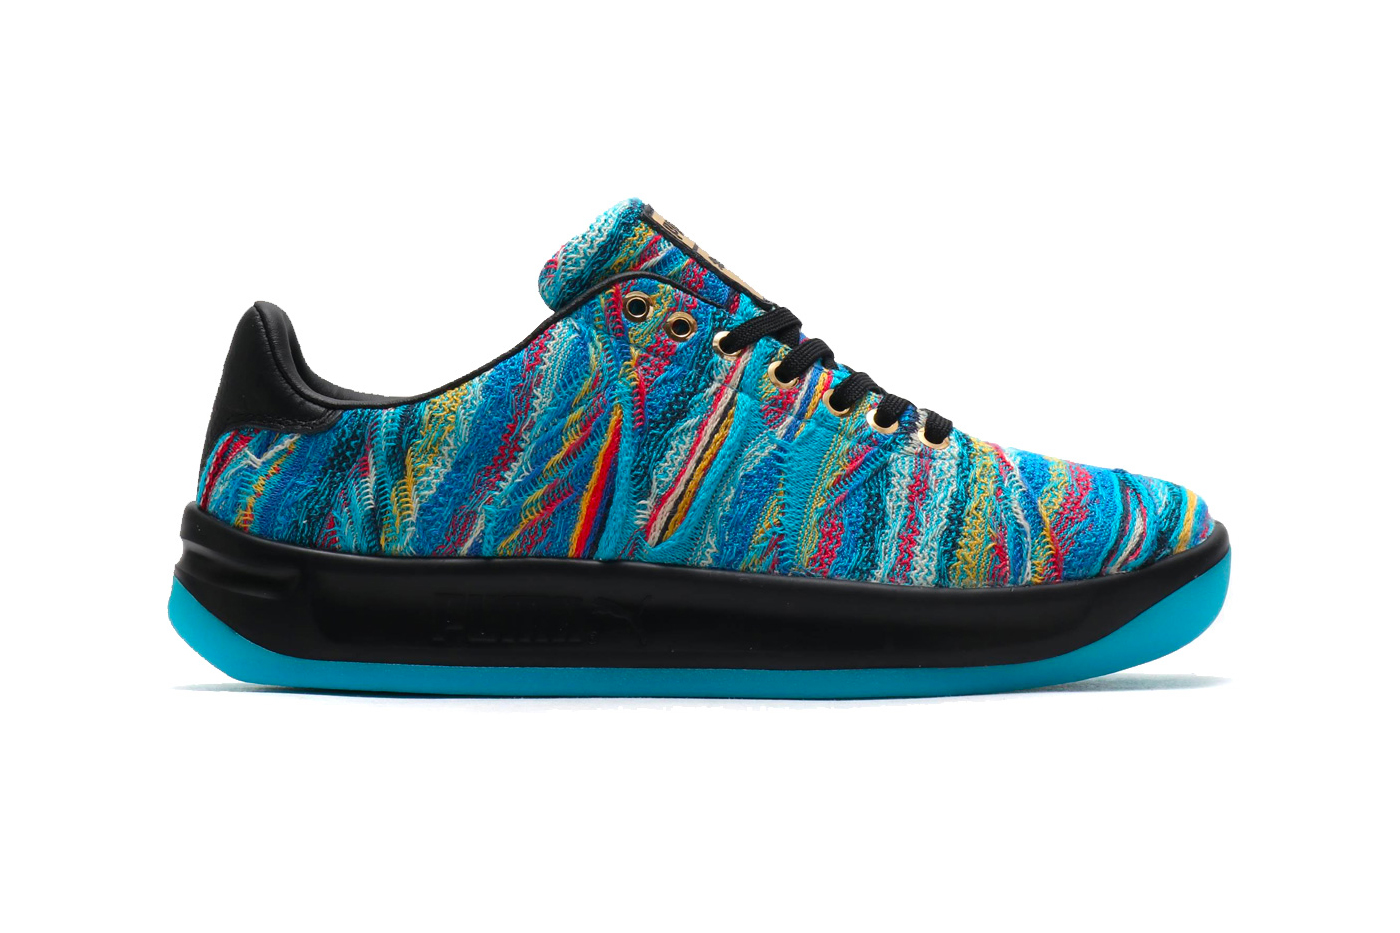 COOGI x PUMA California Sneaker Leadcat Slide blue atoll multi knit release collaboration sneaker price purchase available now buy online